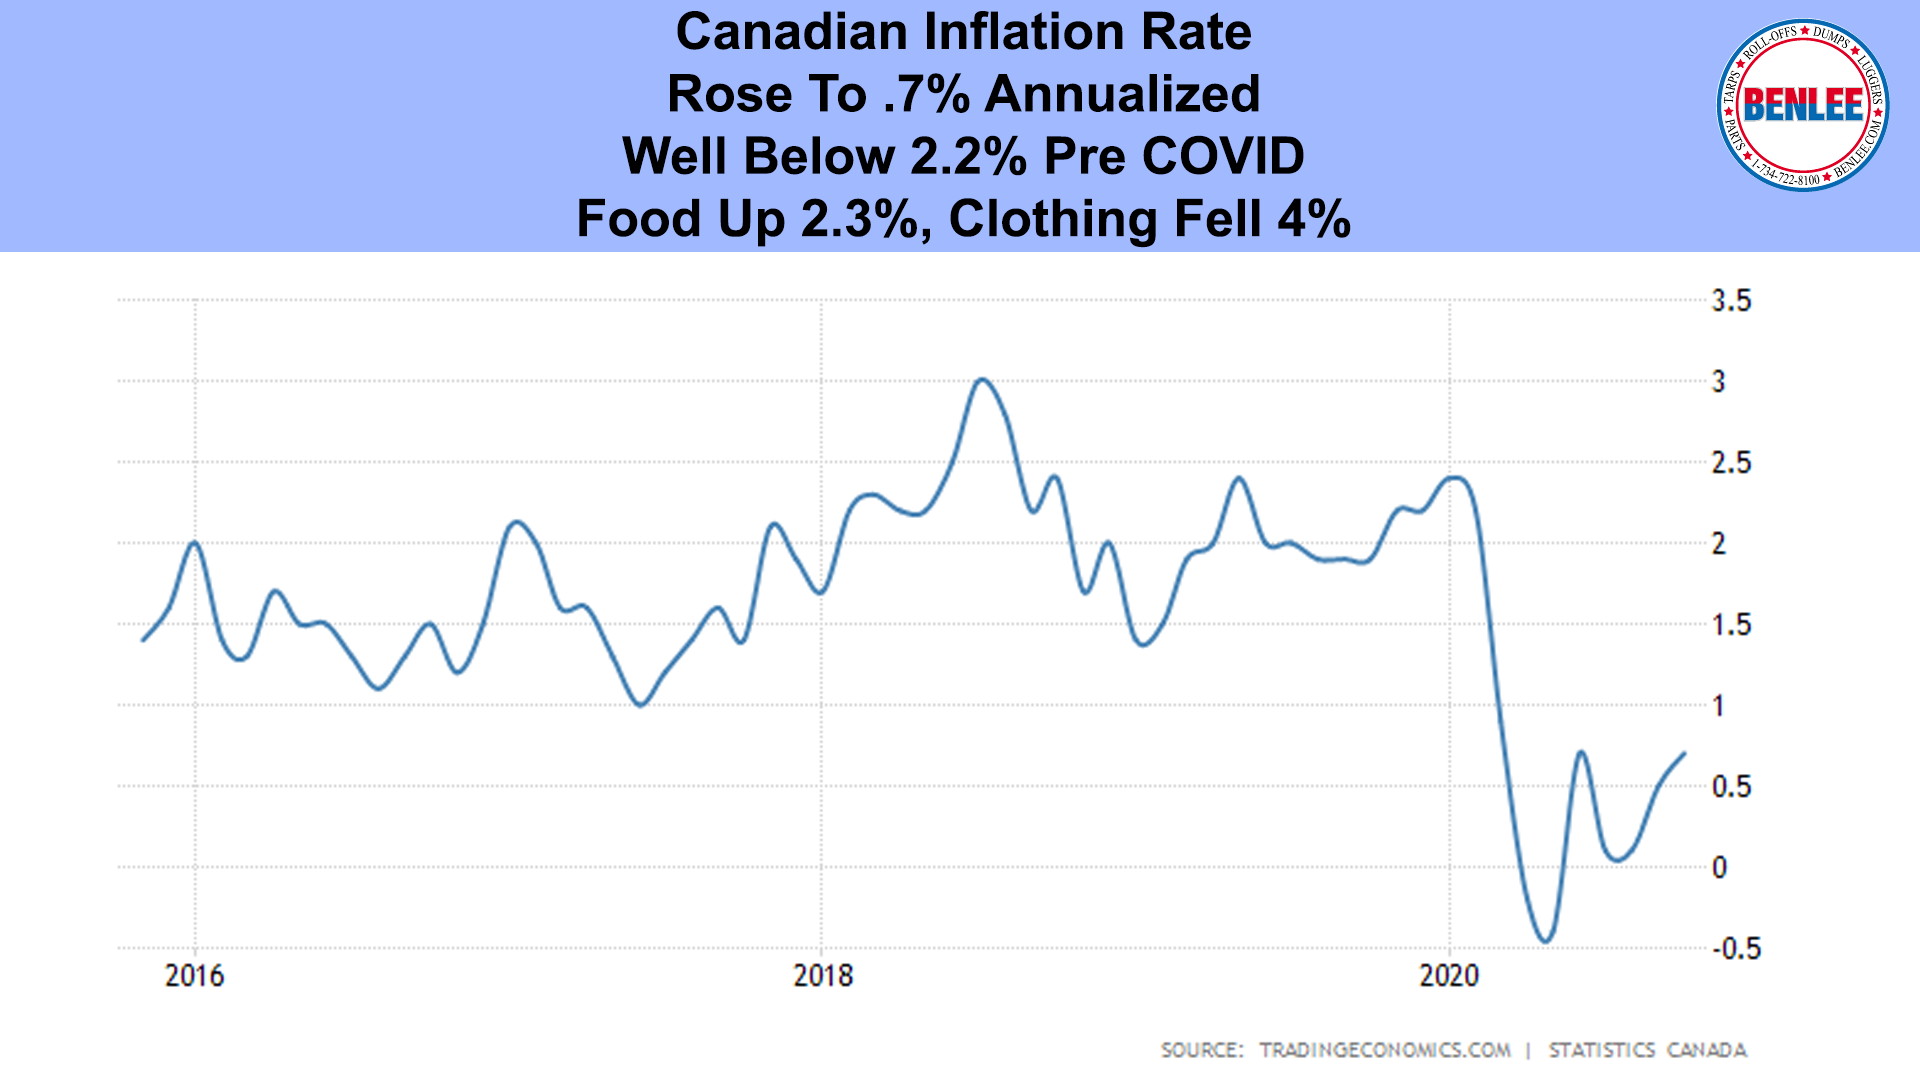 Canadian Inflation Rate